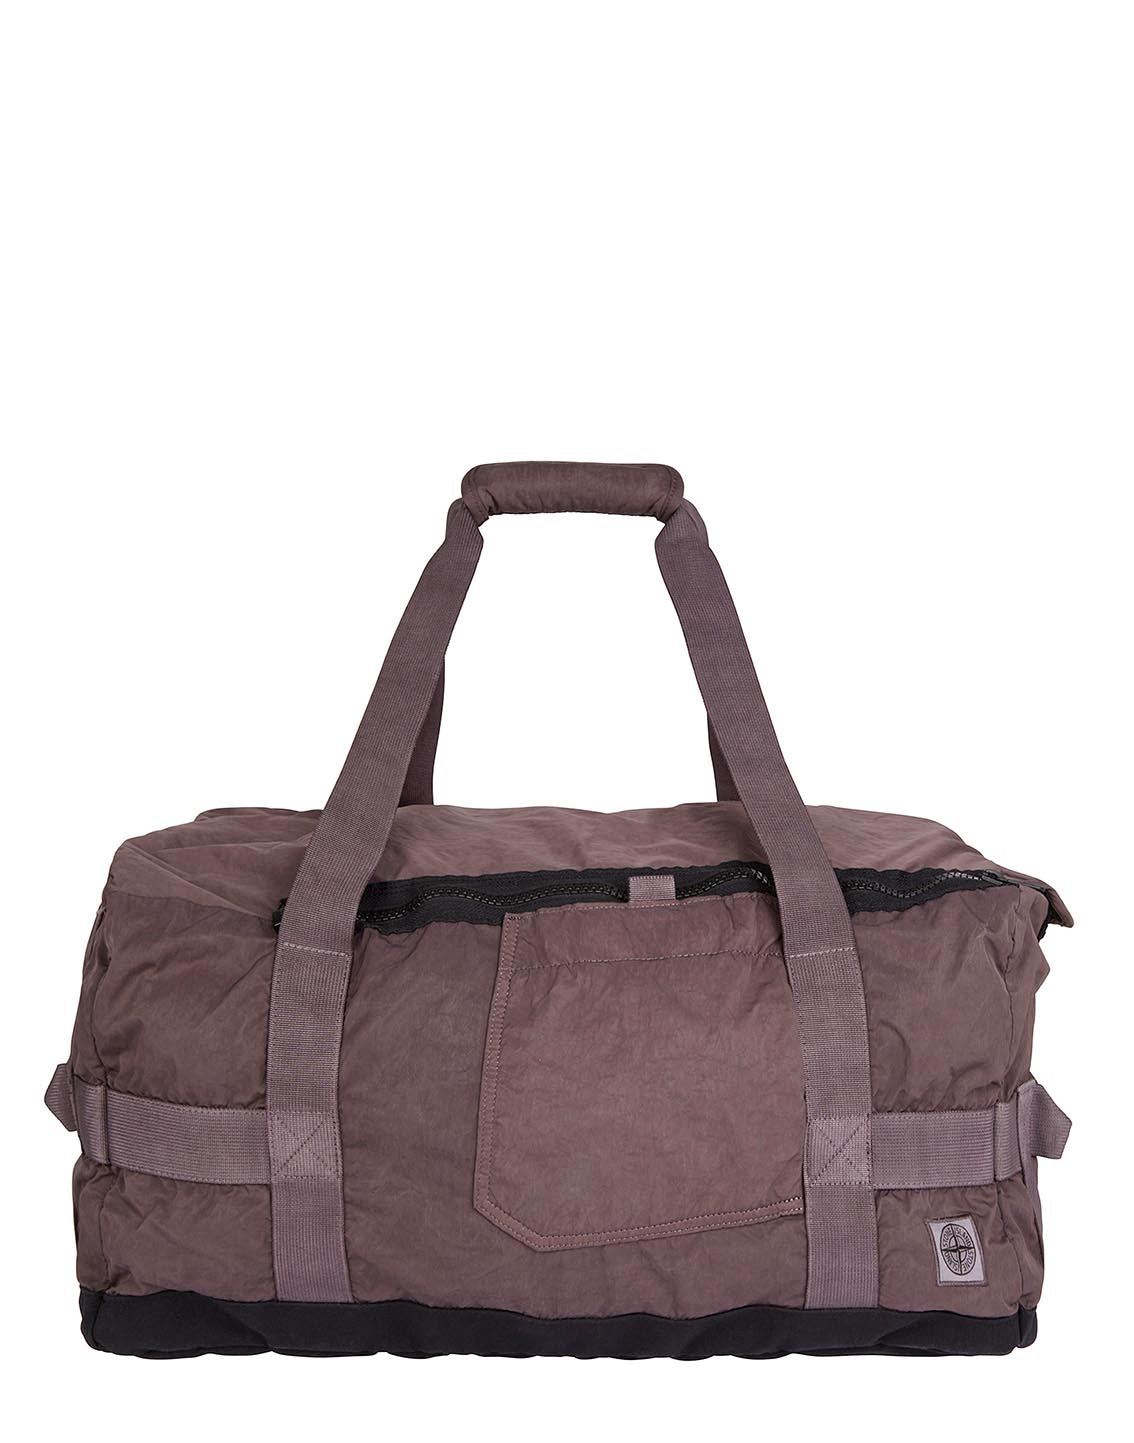 91370 Travel Bag in Rose Quartz